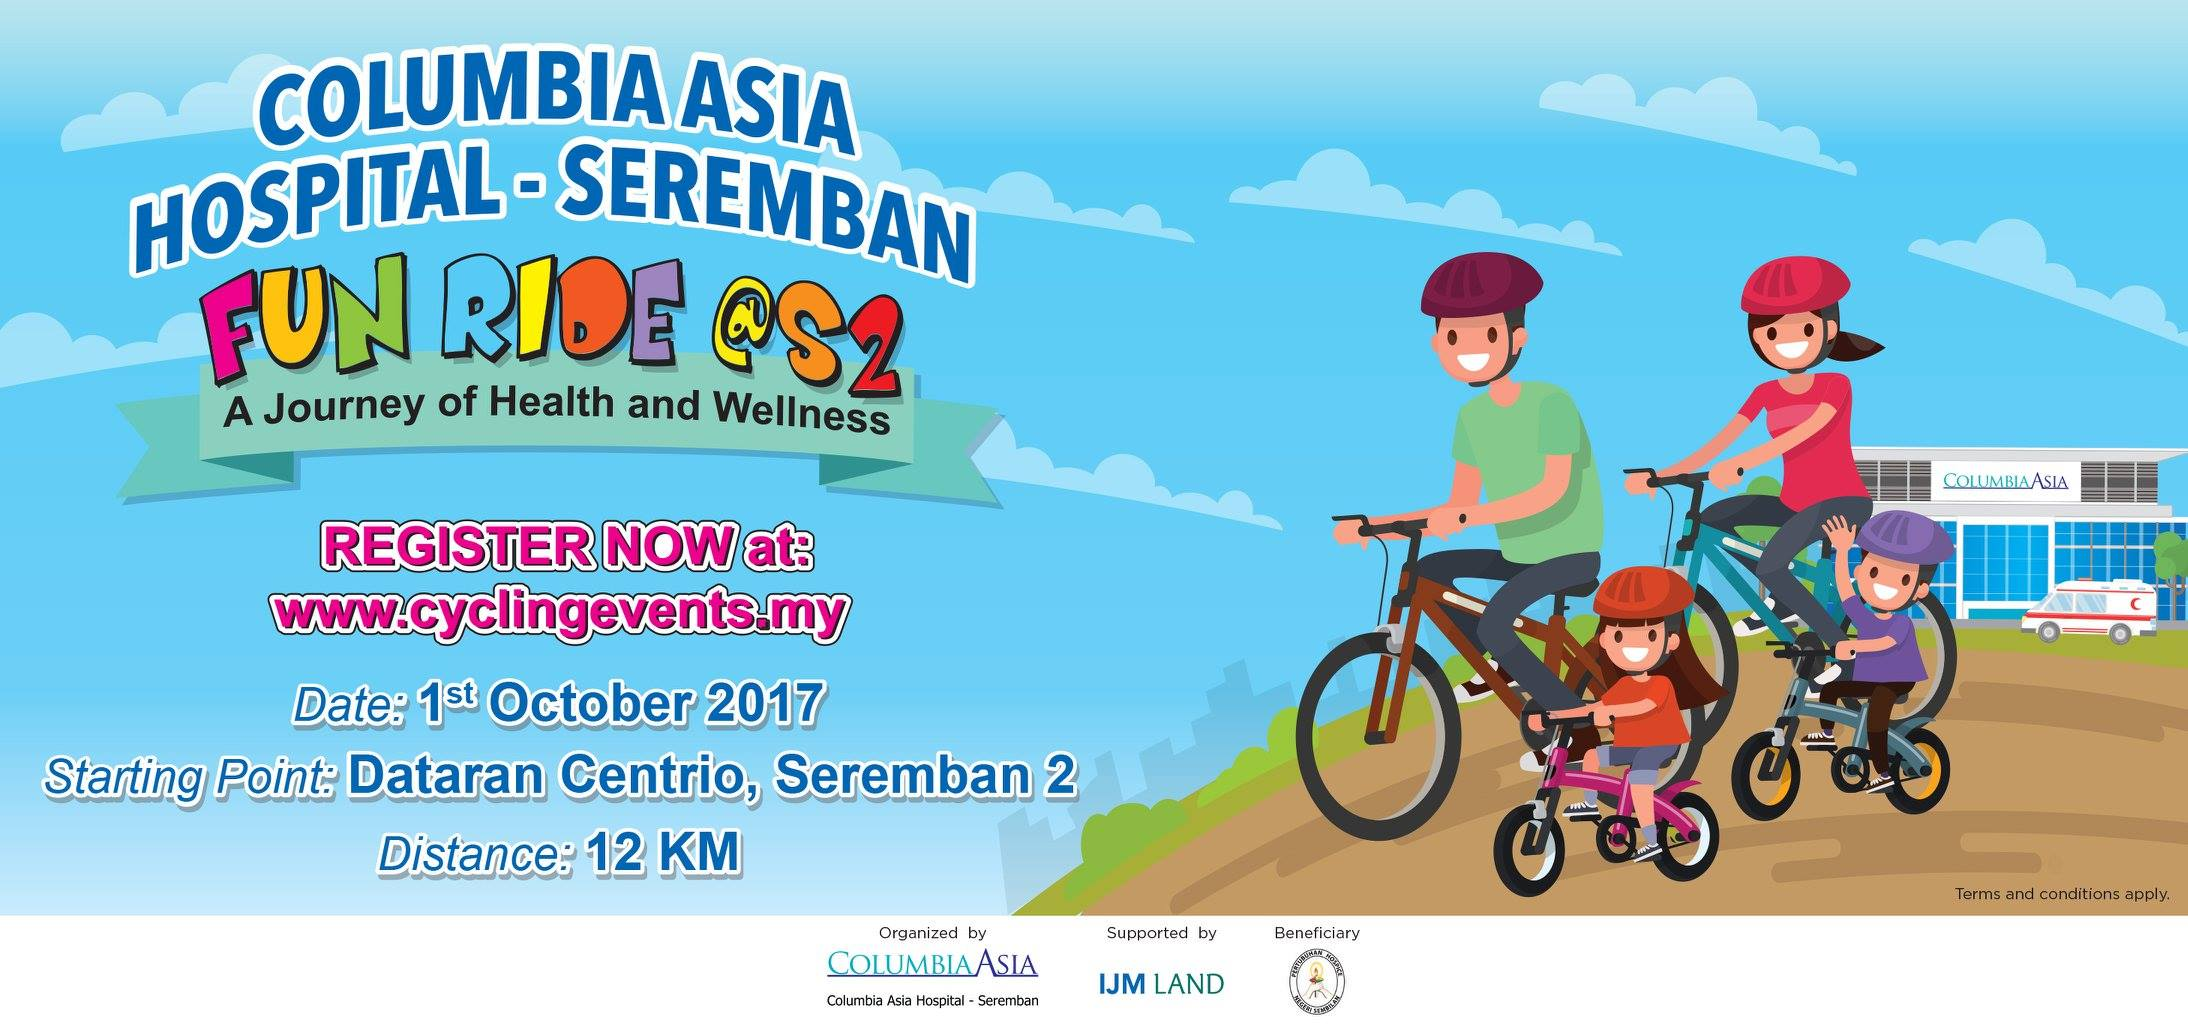 Columbia Asia Hospital Seremban Fun Ride